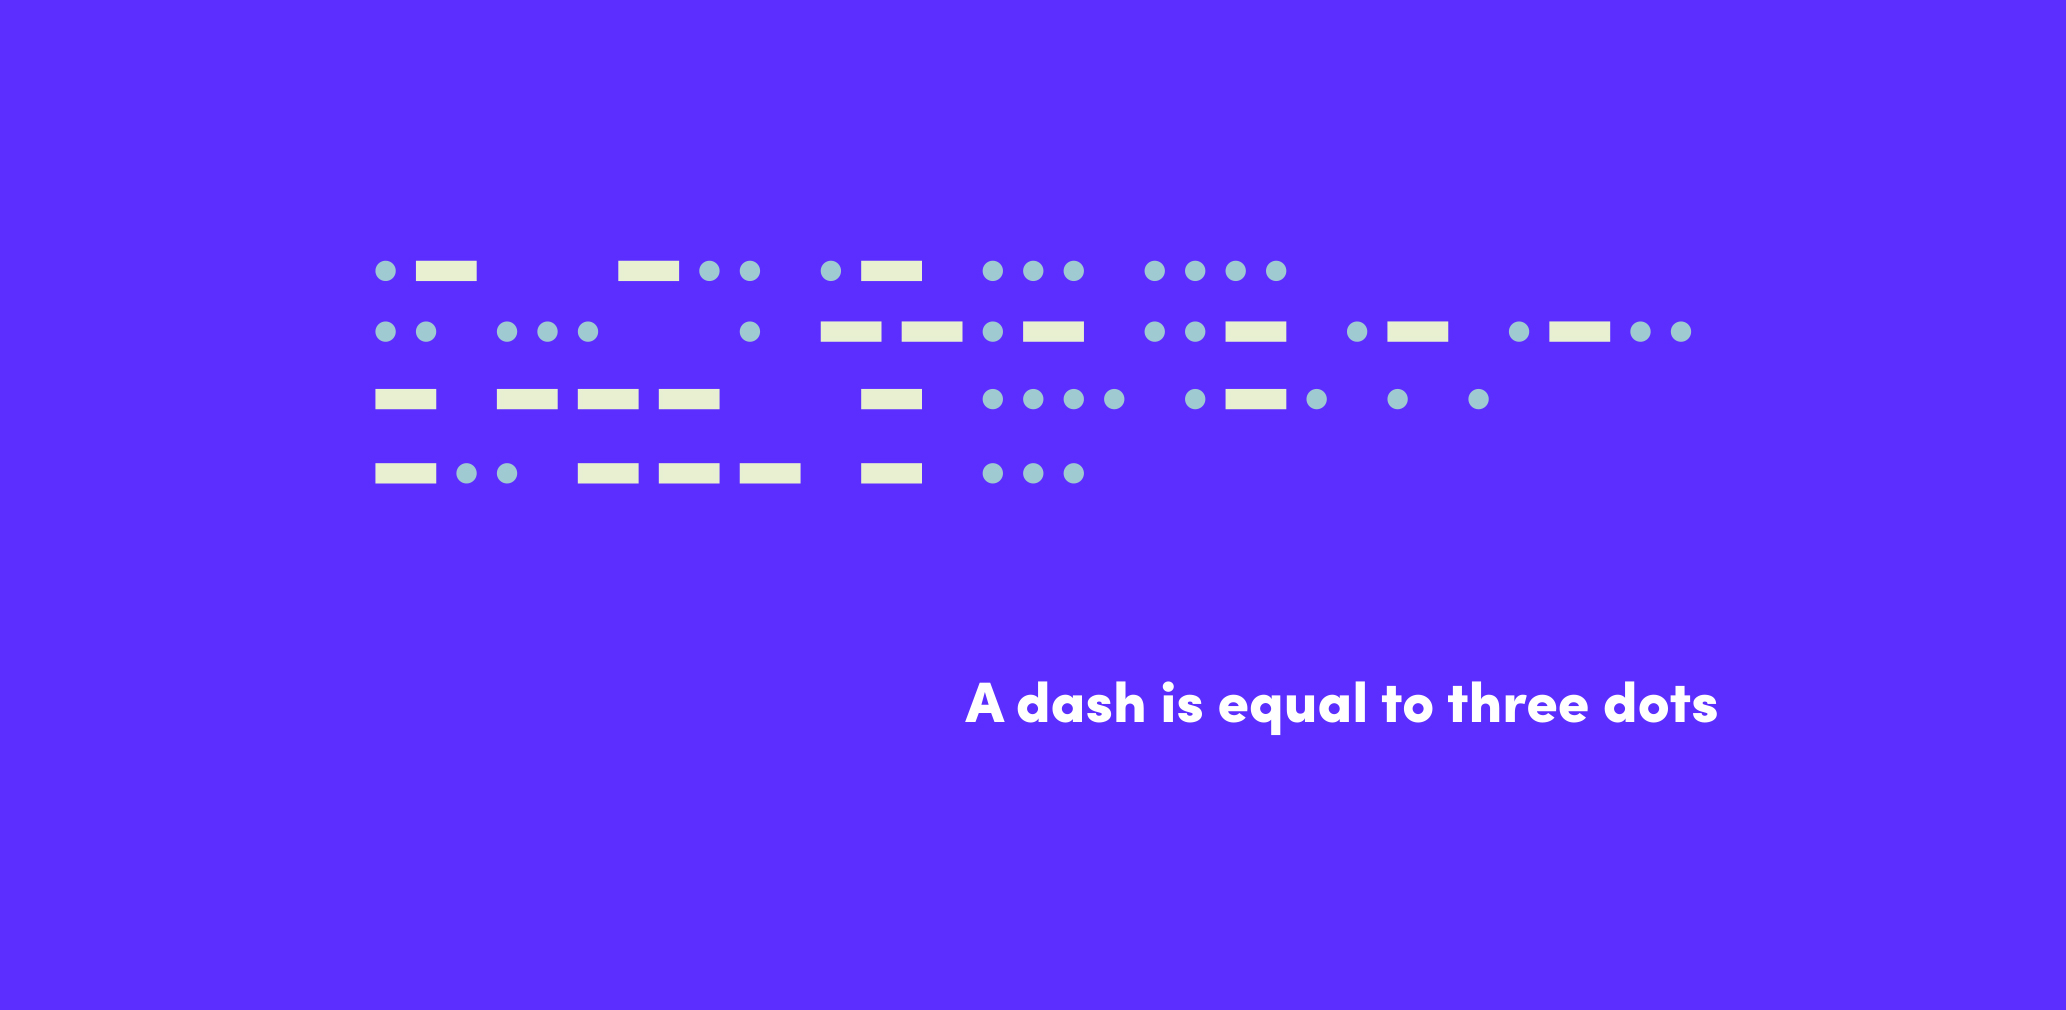 a dash is equal to three dots